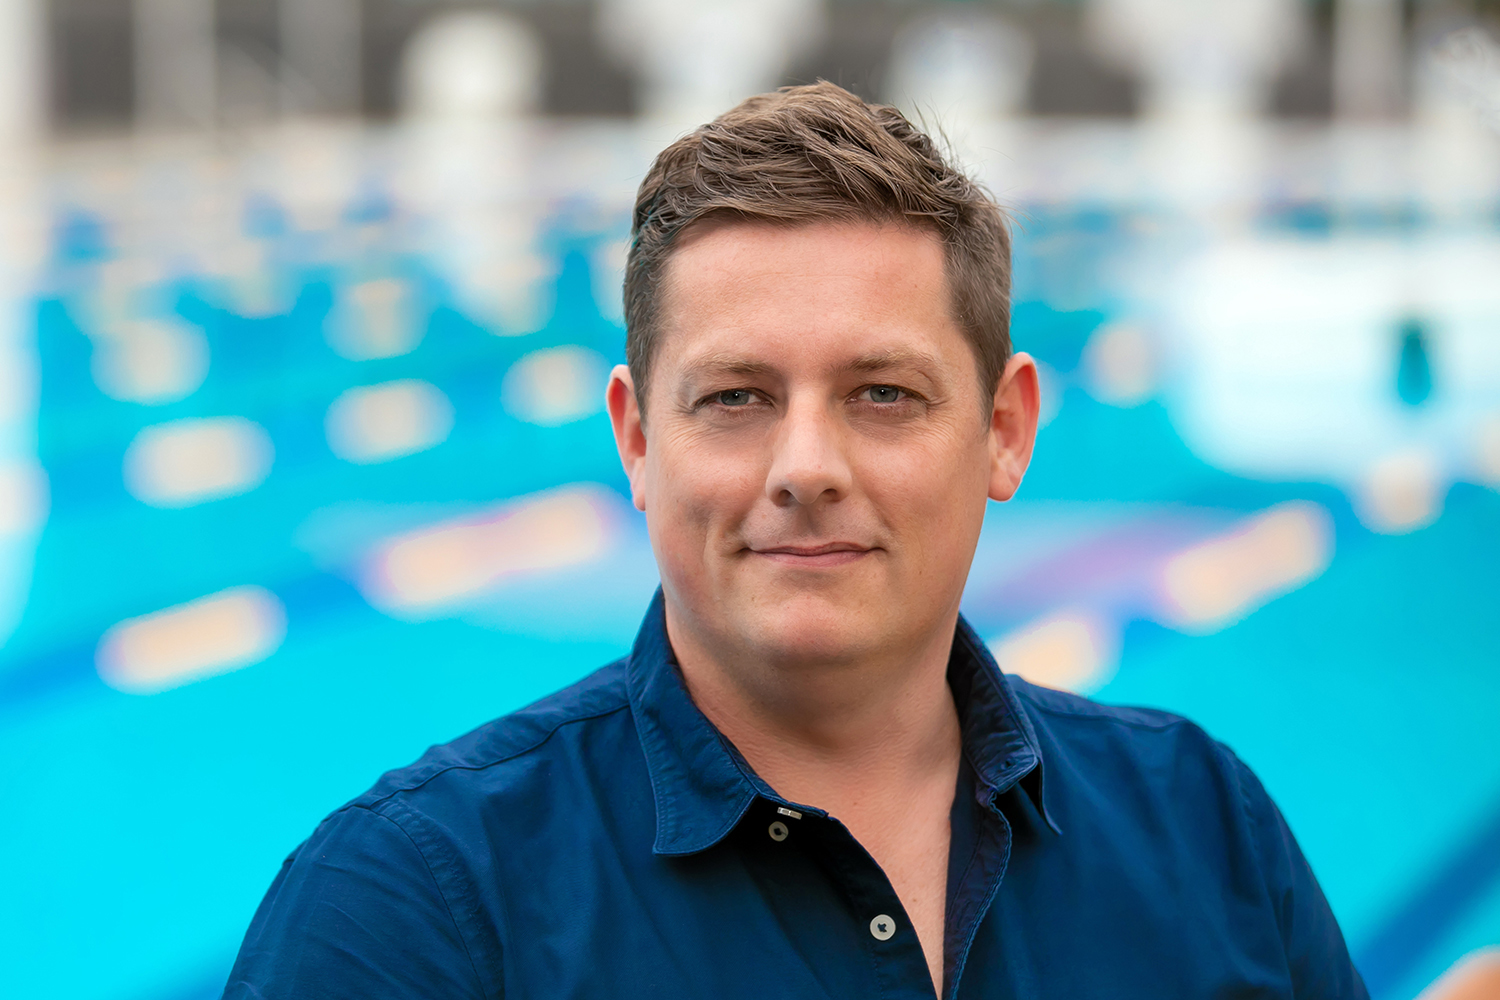 Mr David Lush - Director of Swimming